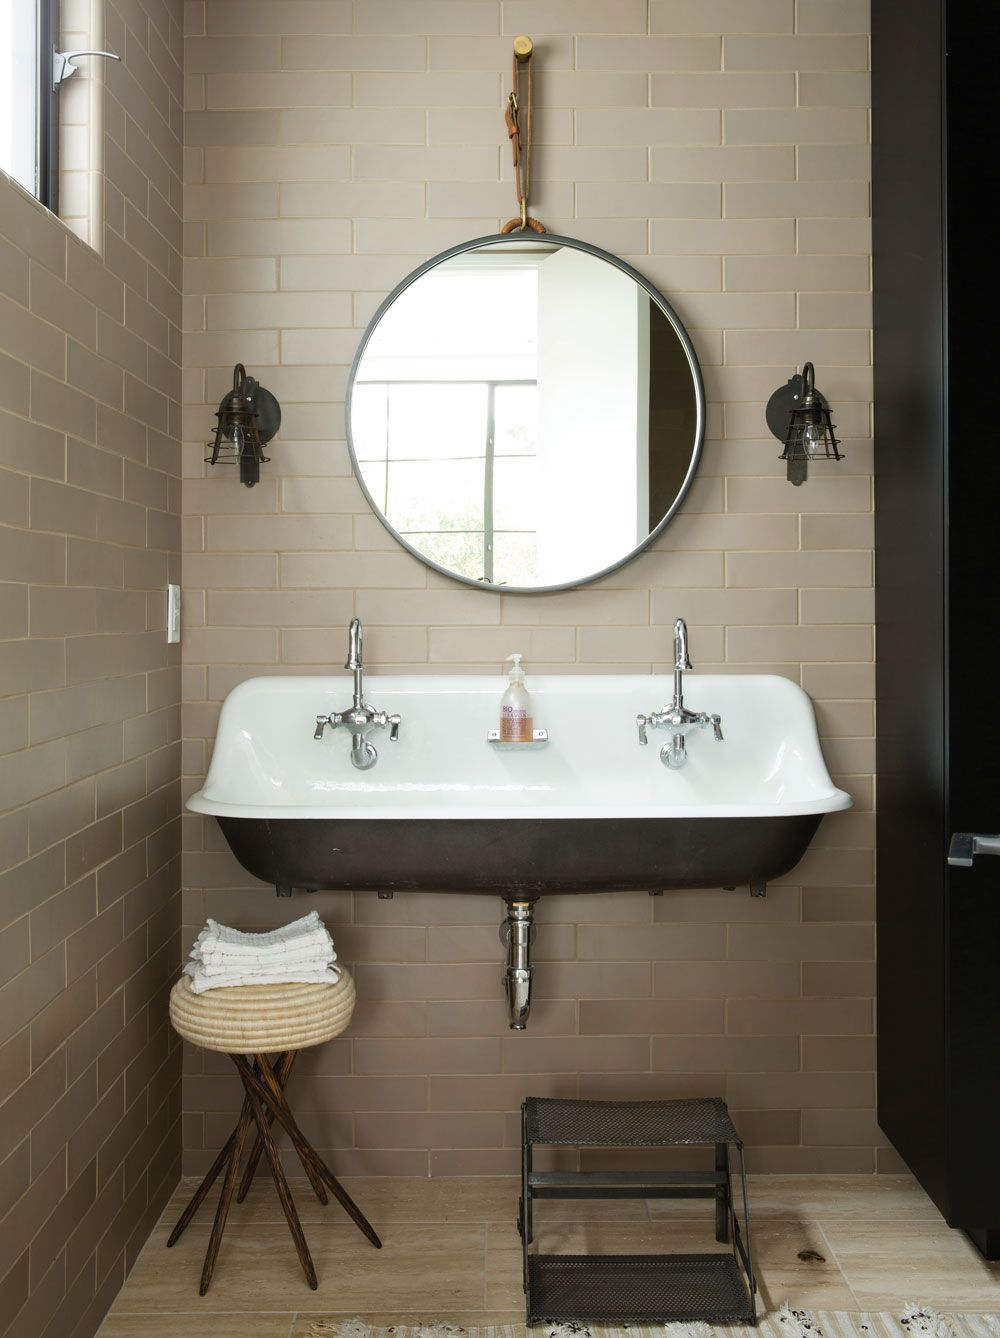 Basic Instincts Bathroom Inspiration Beige Bathroom Vintage Sink